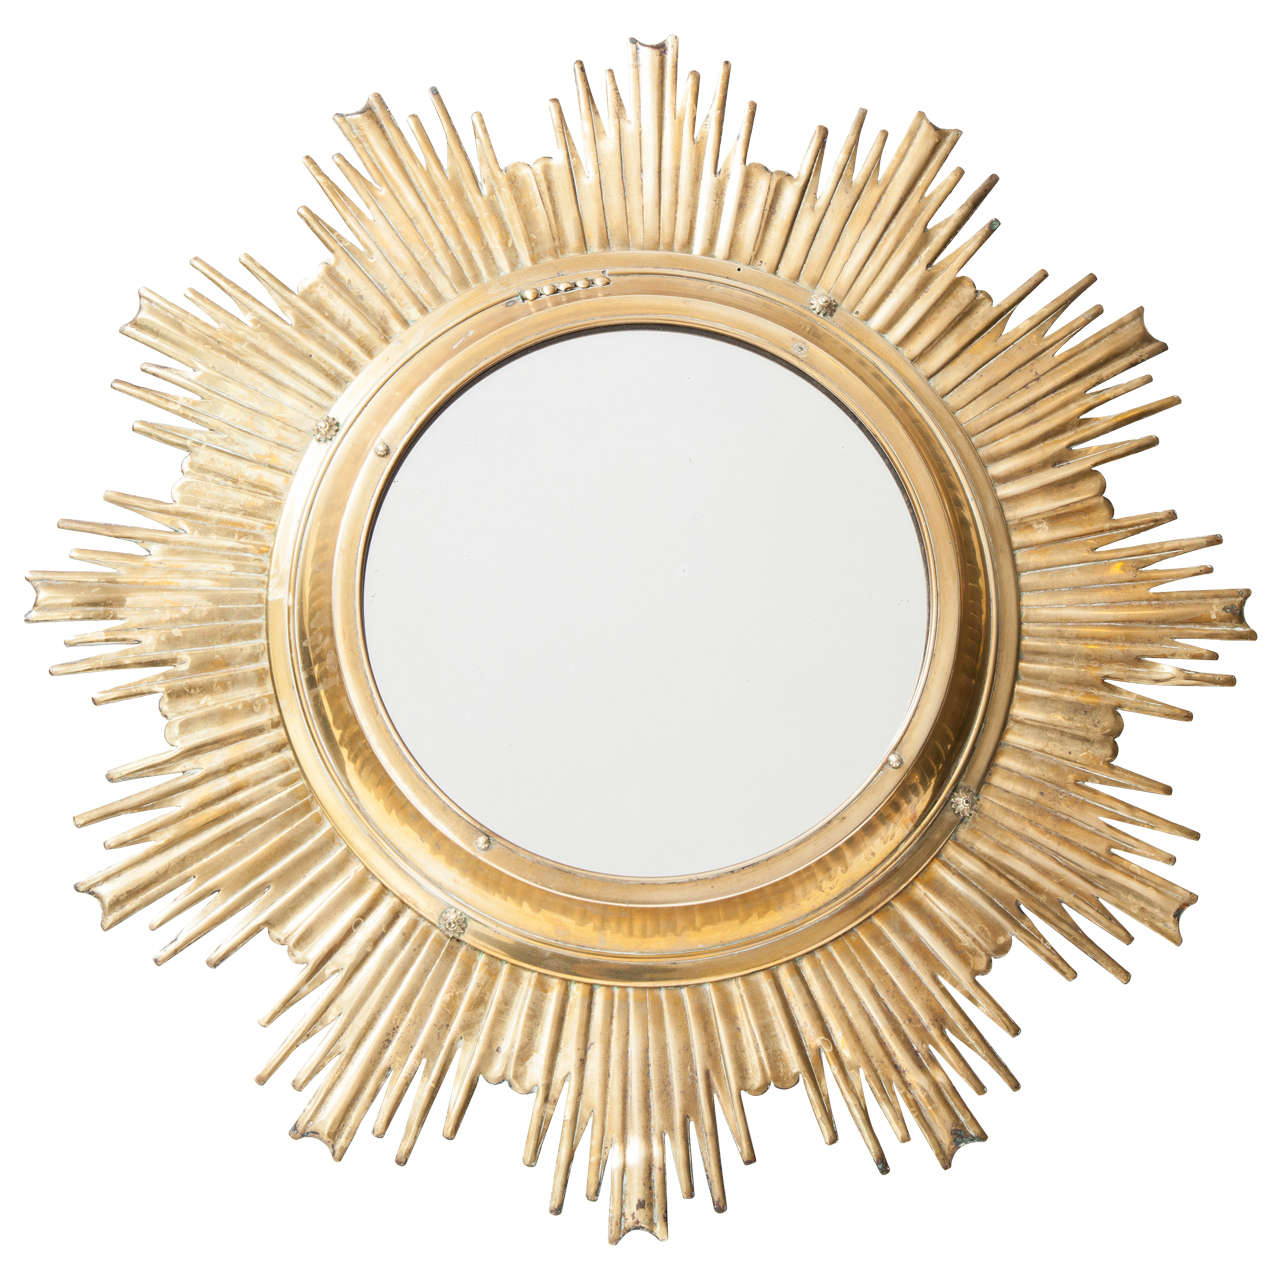 Solid Brass High Quality Sunburst Mirror France 1950s